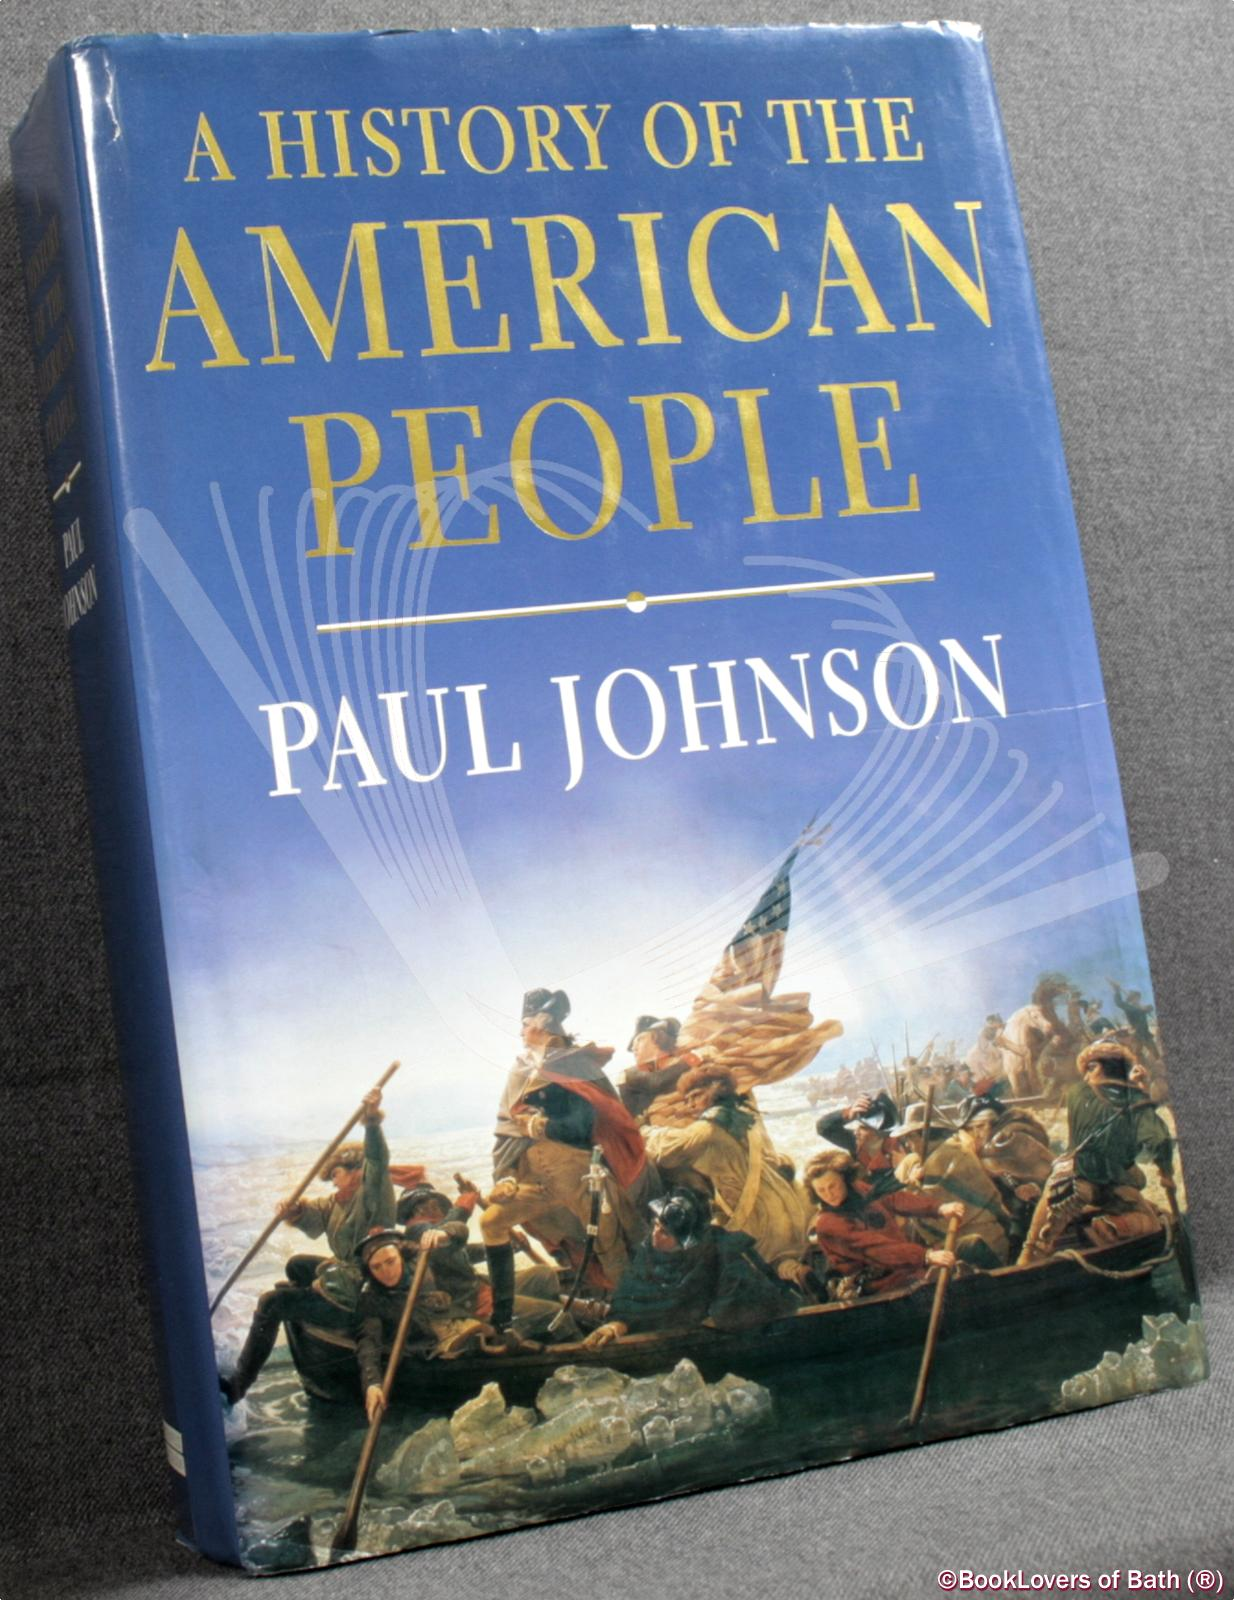 A History of the American People: Paul Johnson